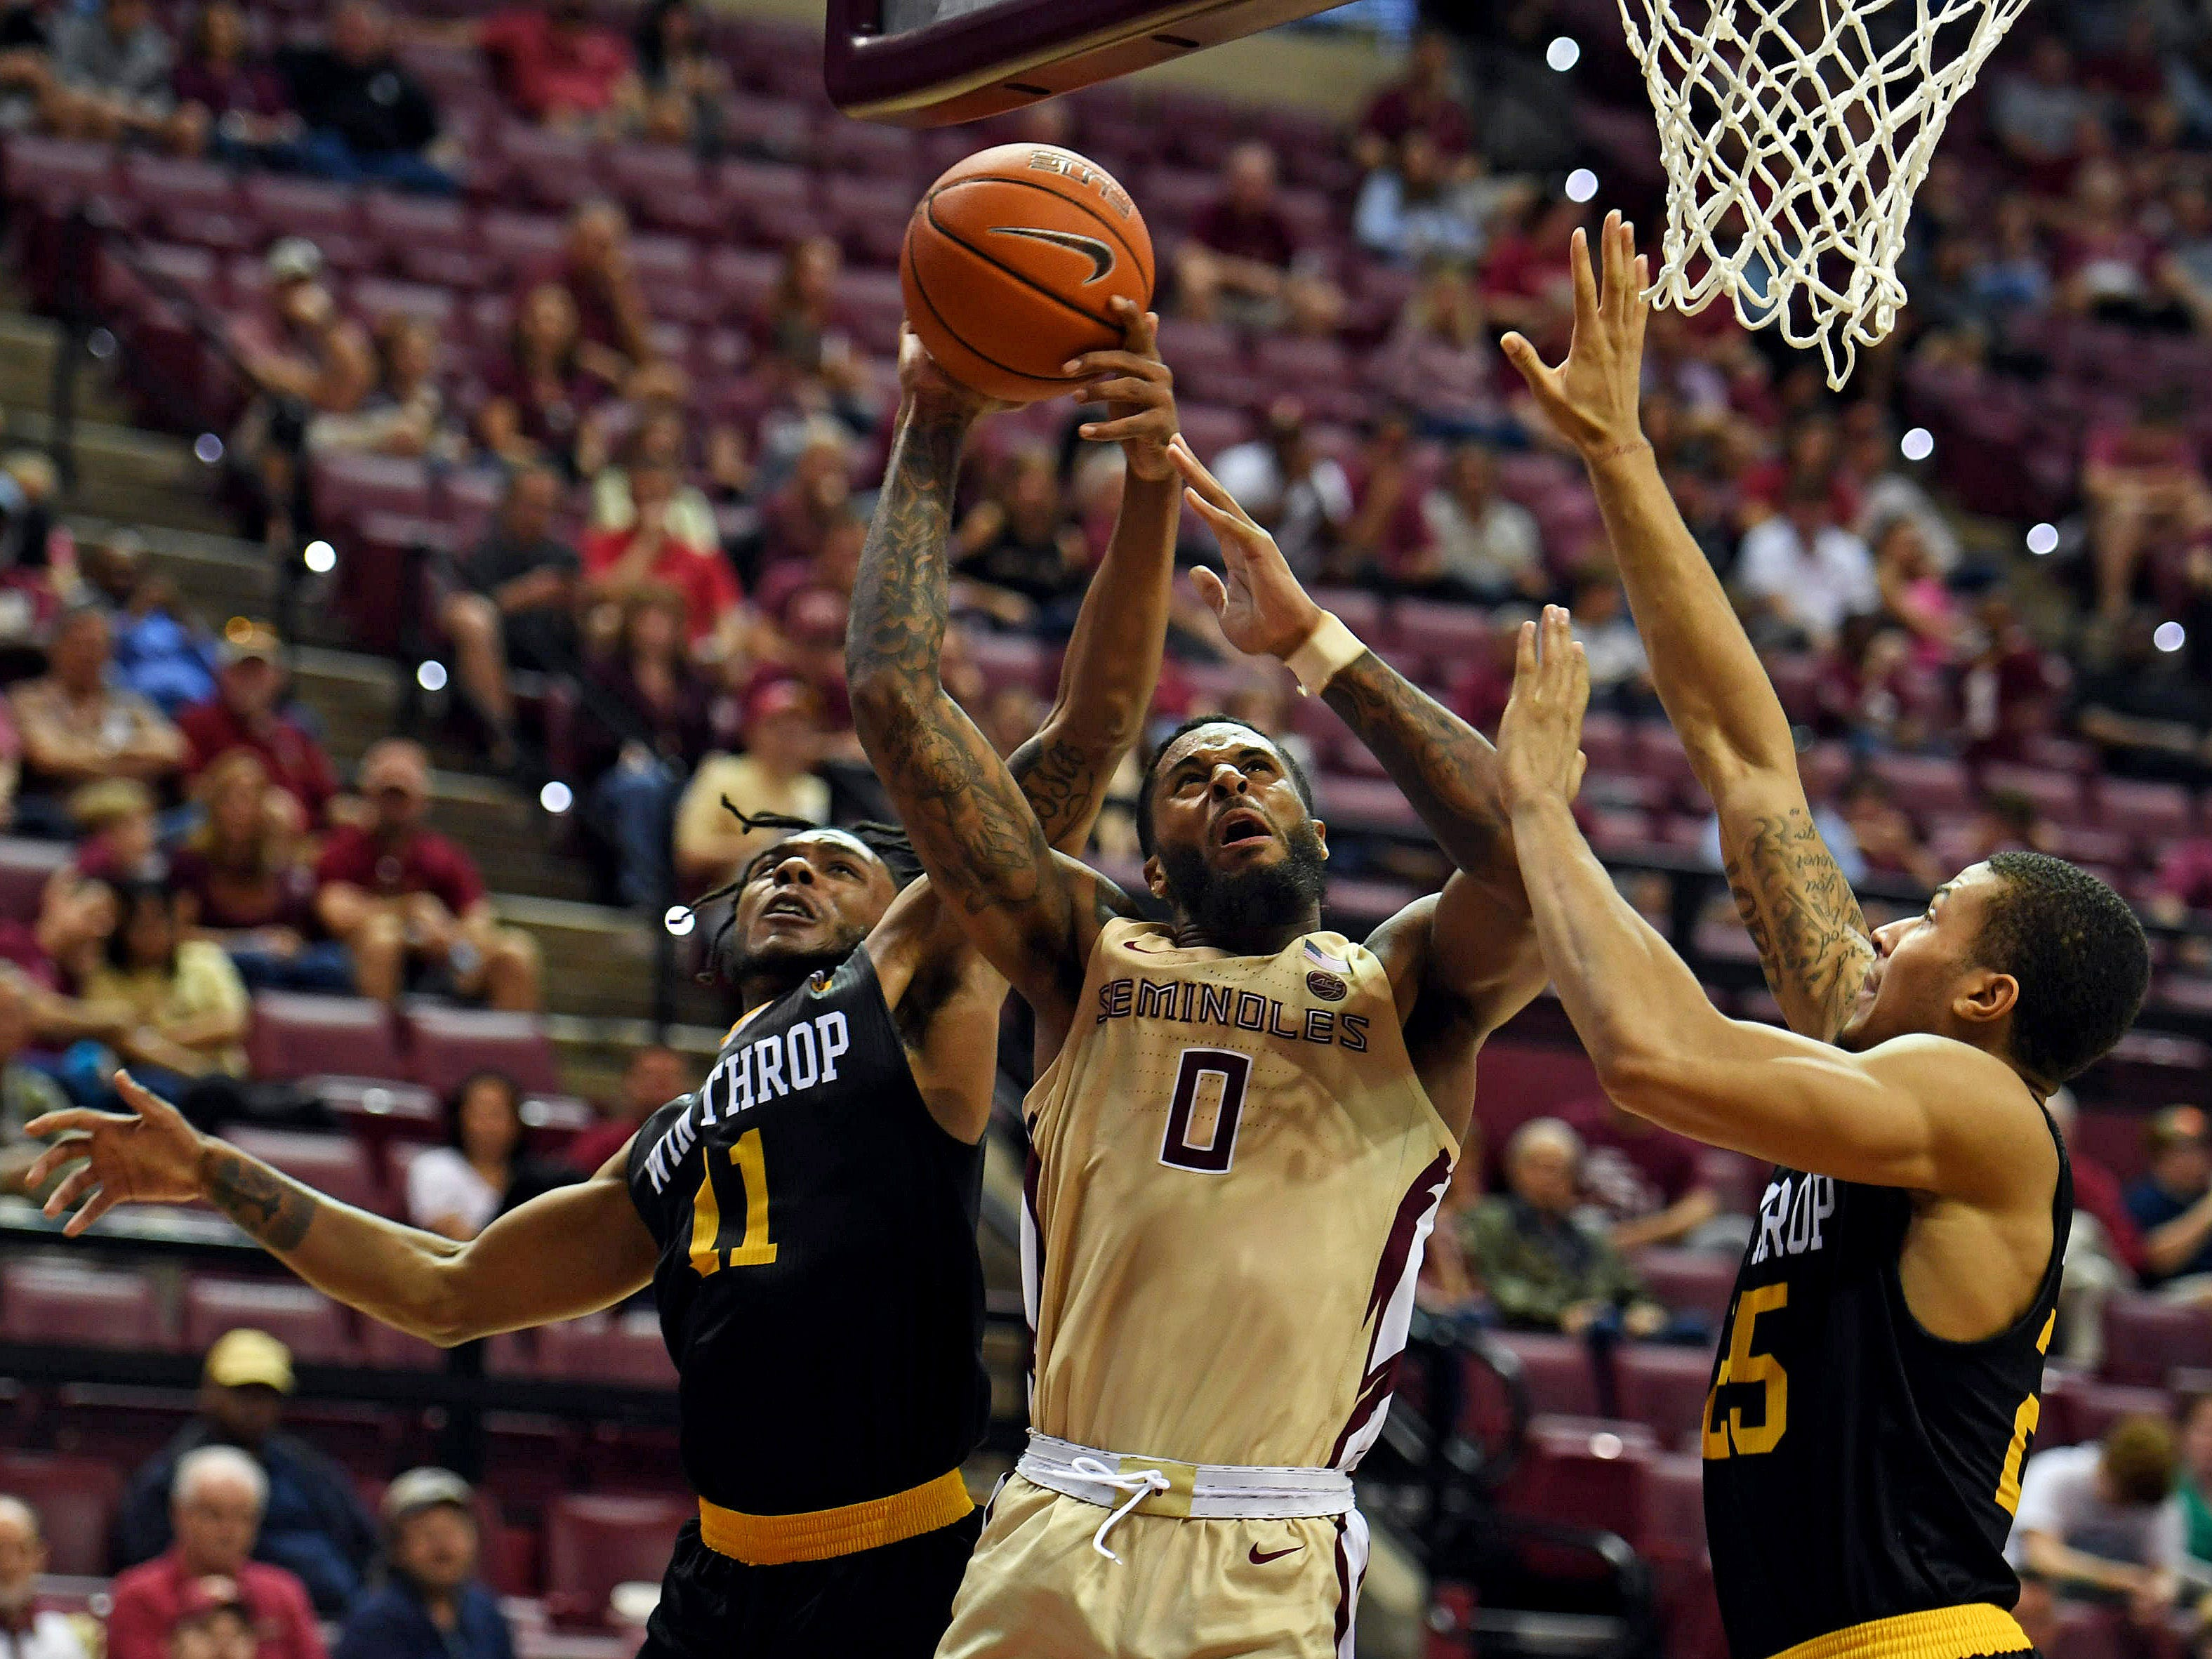 Jan 1, 2019; Tallahassee, FL, USA; Florida State Seminoles forward Phil Cofer (0) goes for a basket past Winthrop Eagles guard Charles Falden (11) during the game at Donald L. Tucker Center. Mandatory Credit: Melina Myers-USA TODAY Sports